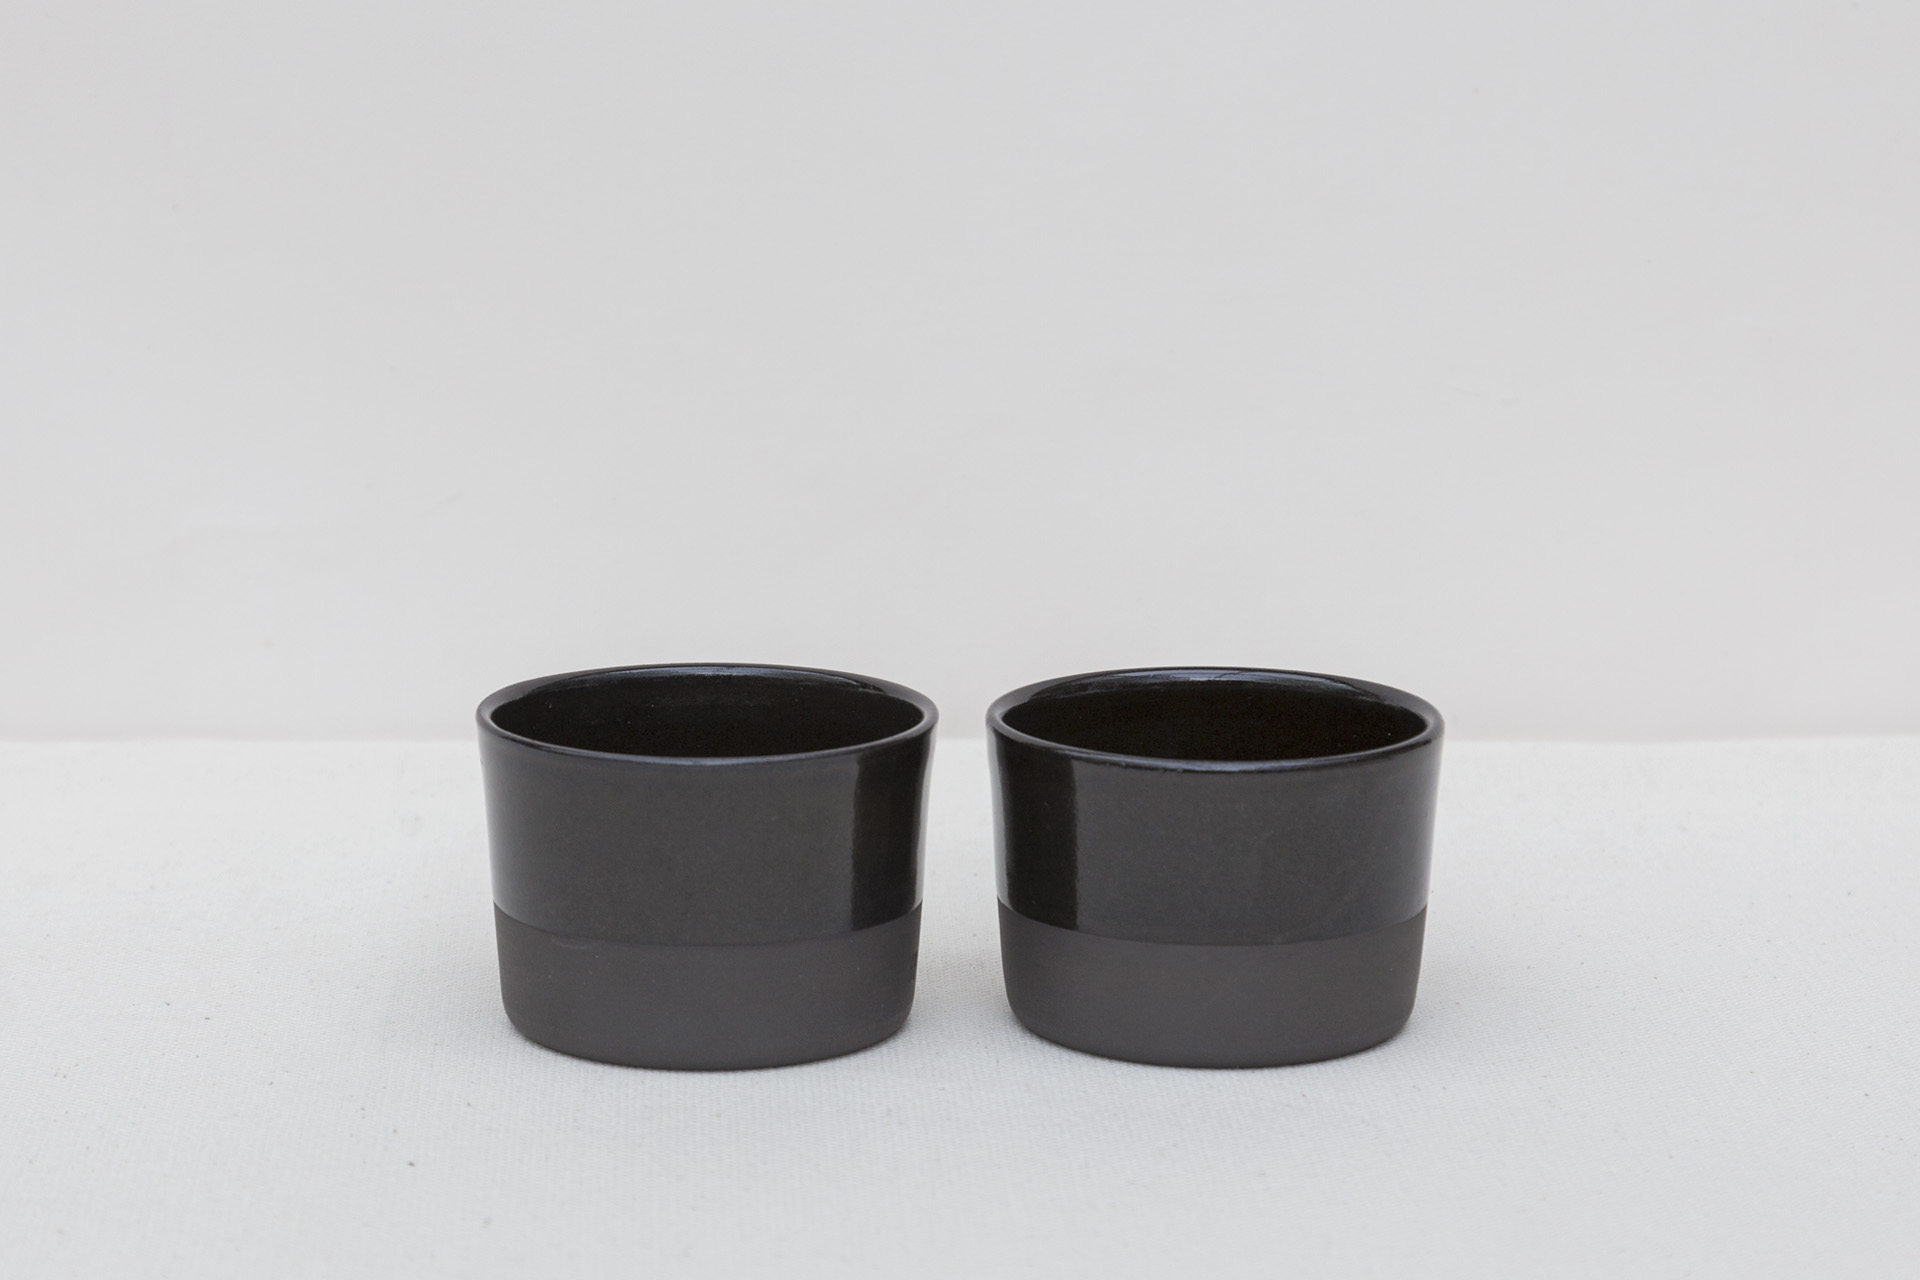 Black Cocoa Wide Espresso Cups 2 | Set of 2